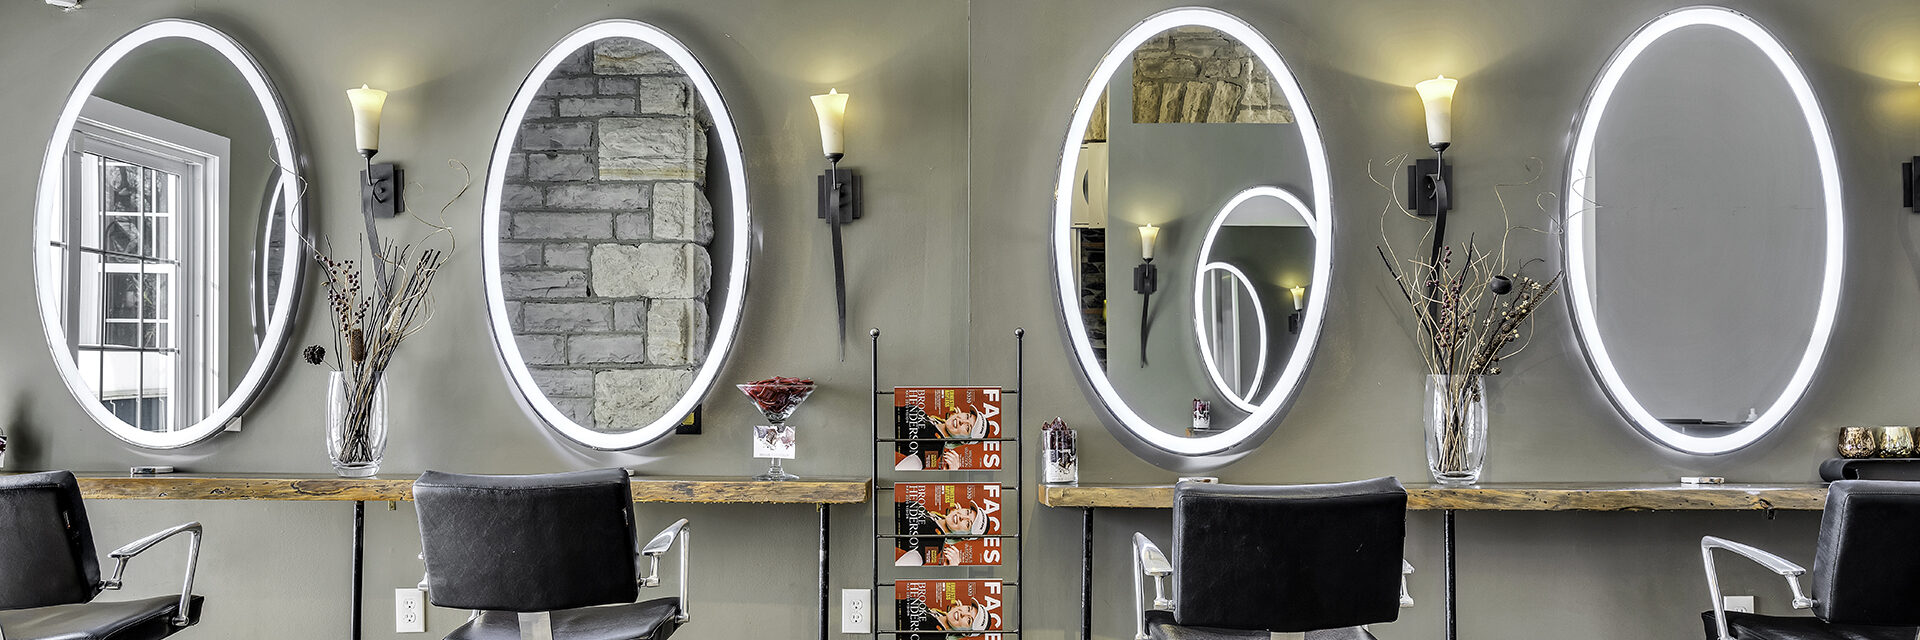 Esthetician layout in spa and salon at Jask